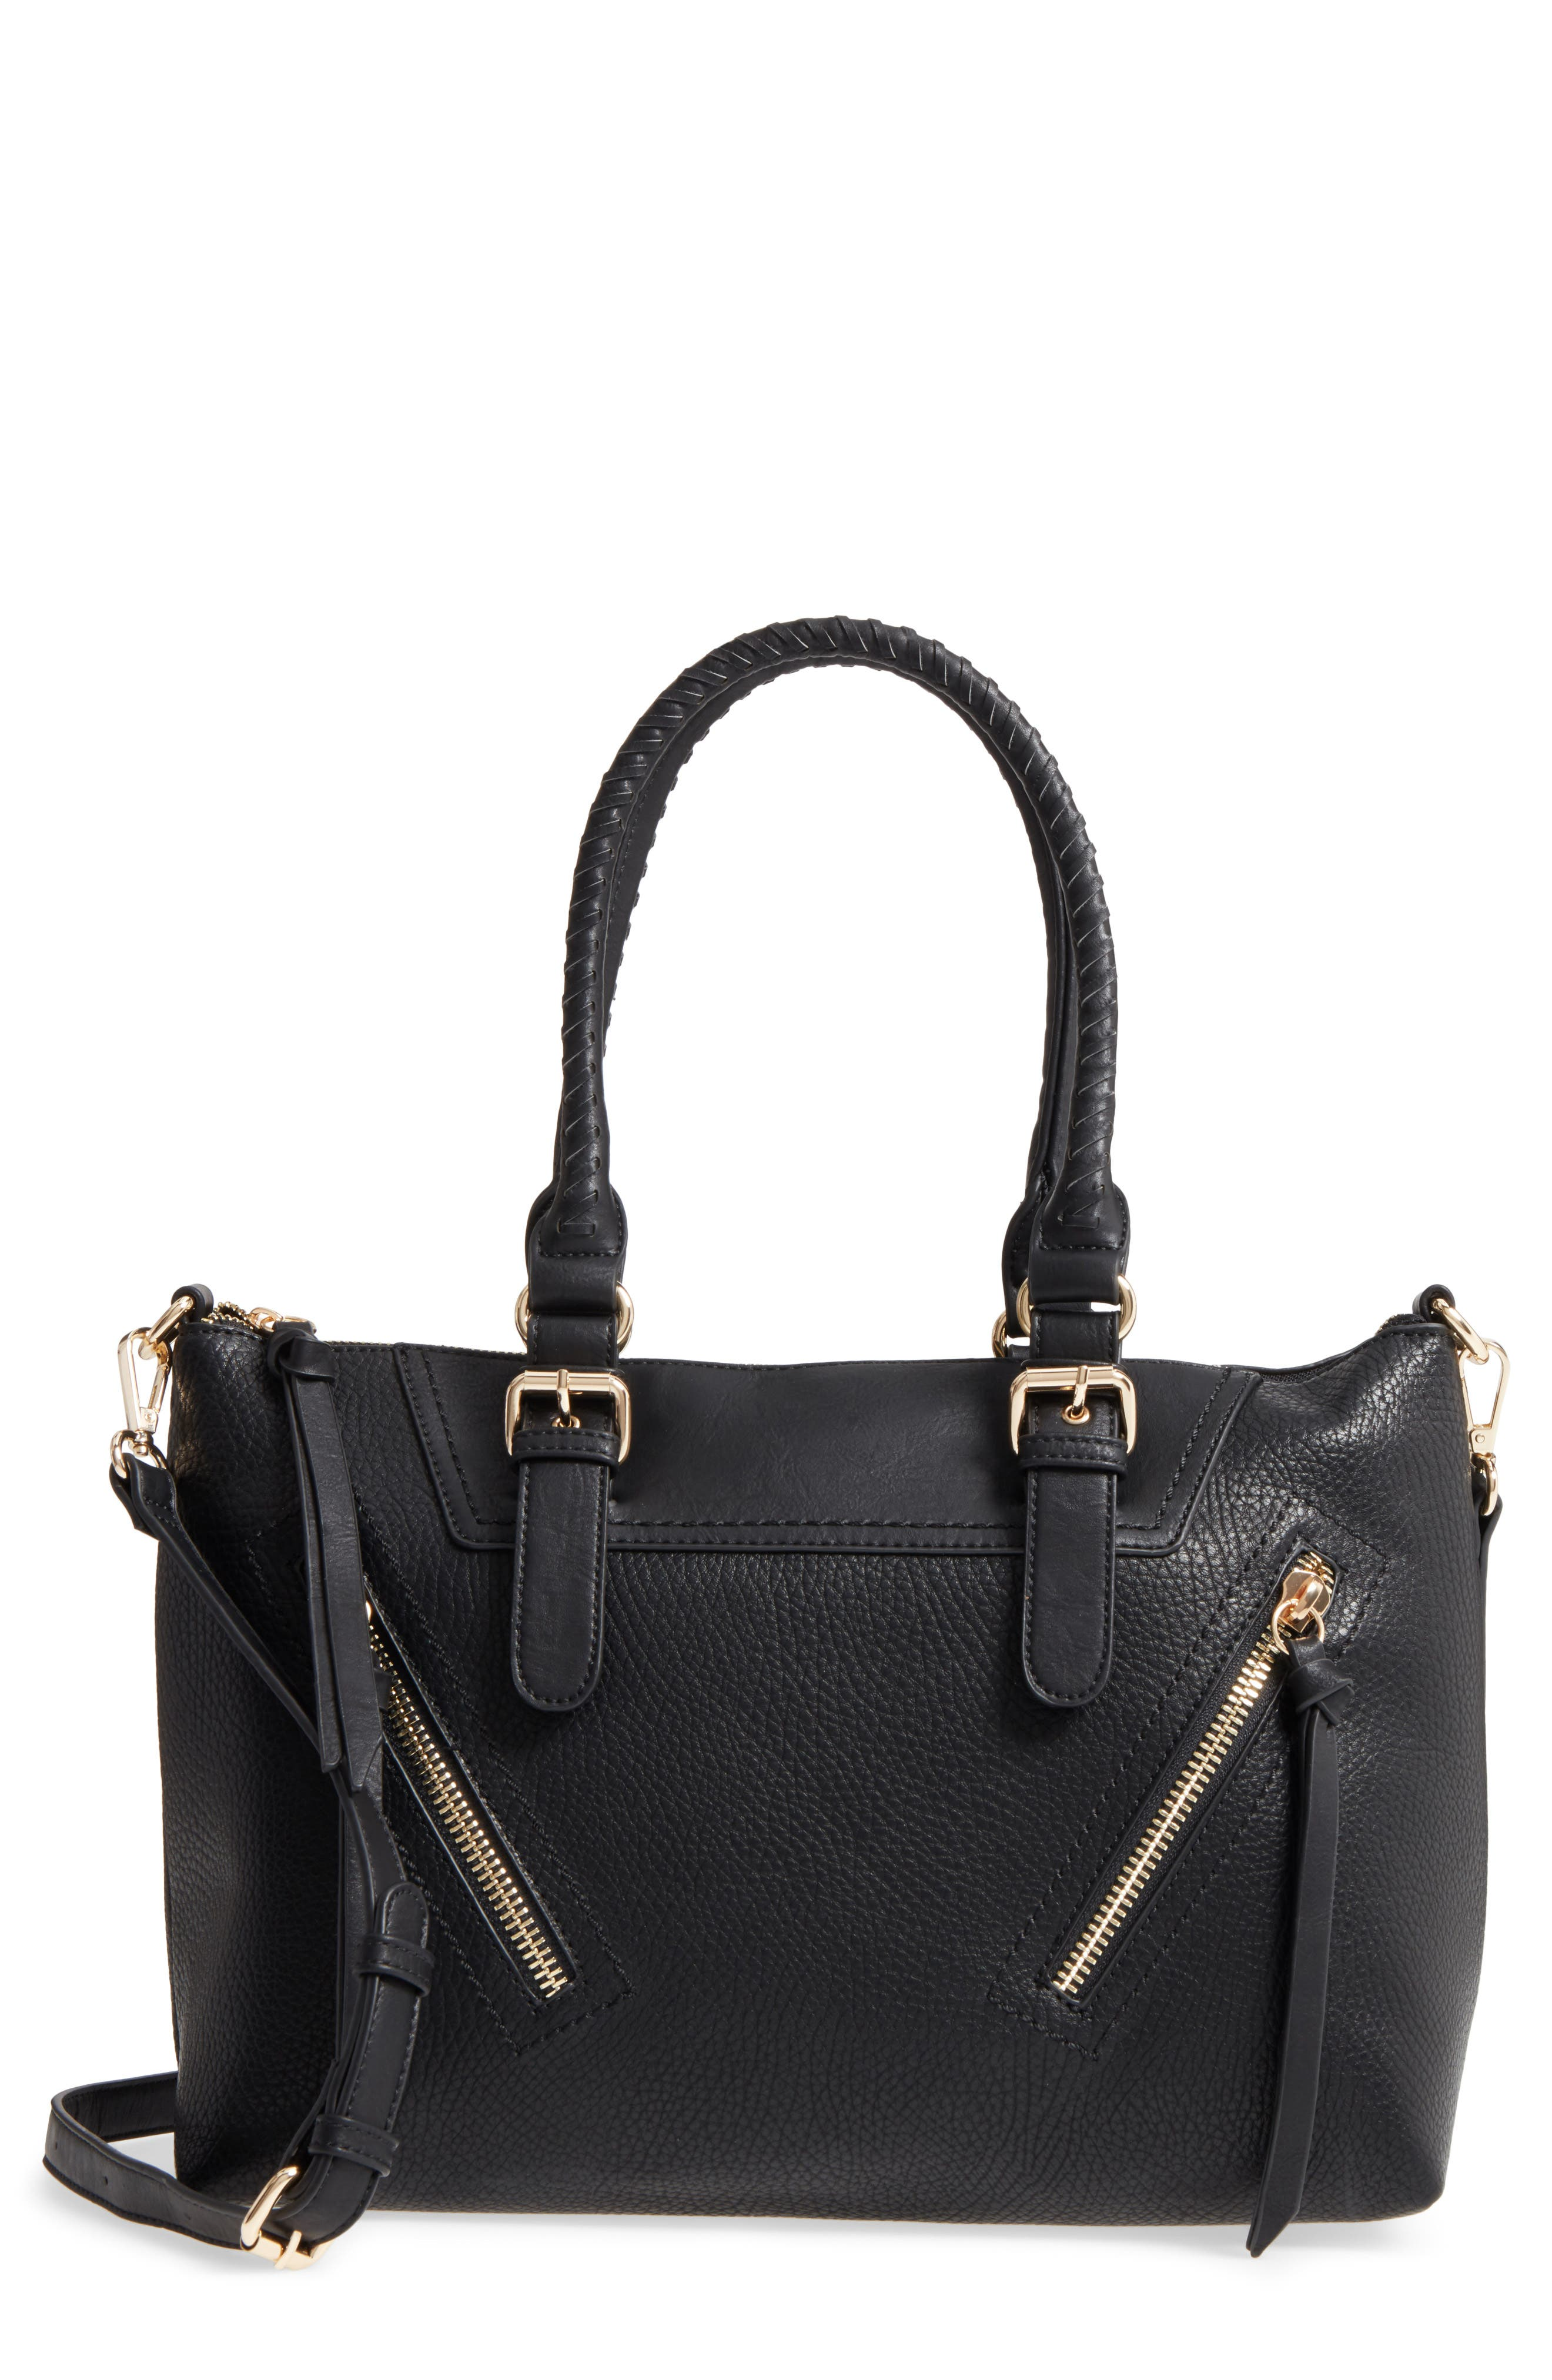 Alternate Image 1 Selected - Sole Society Girard Faux Leather Satchel